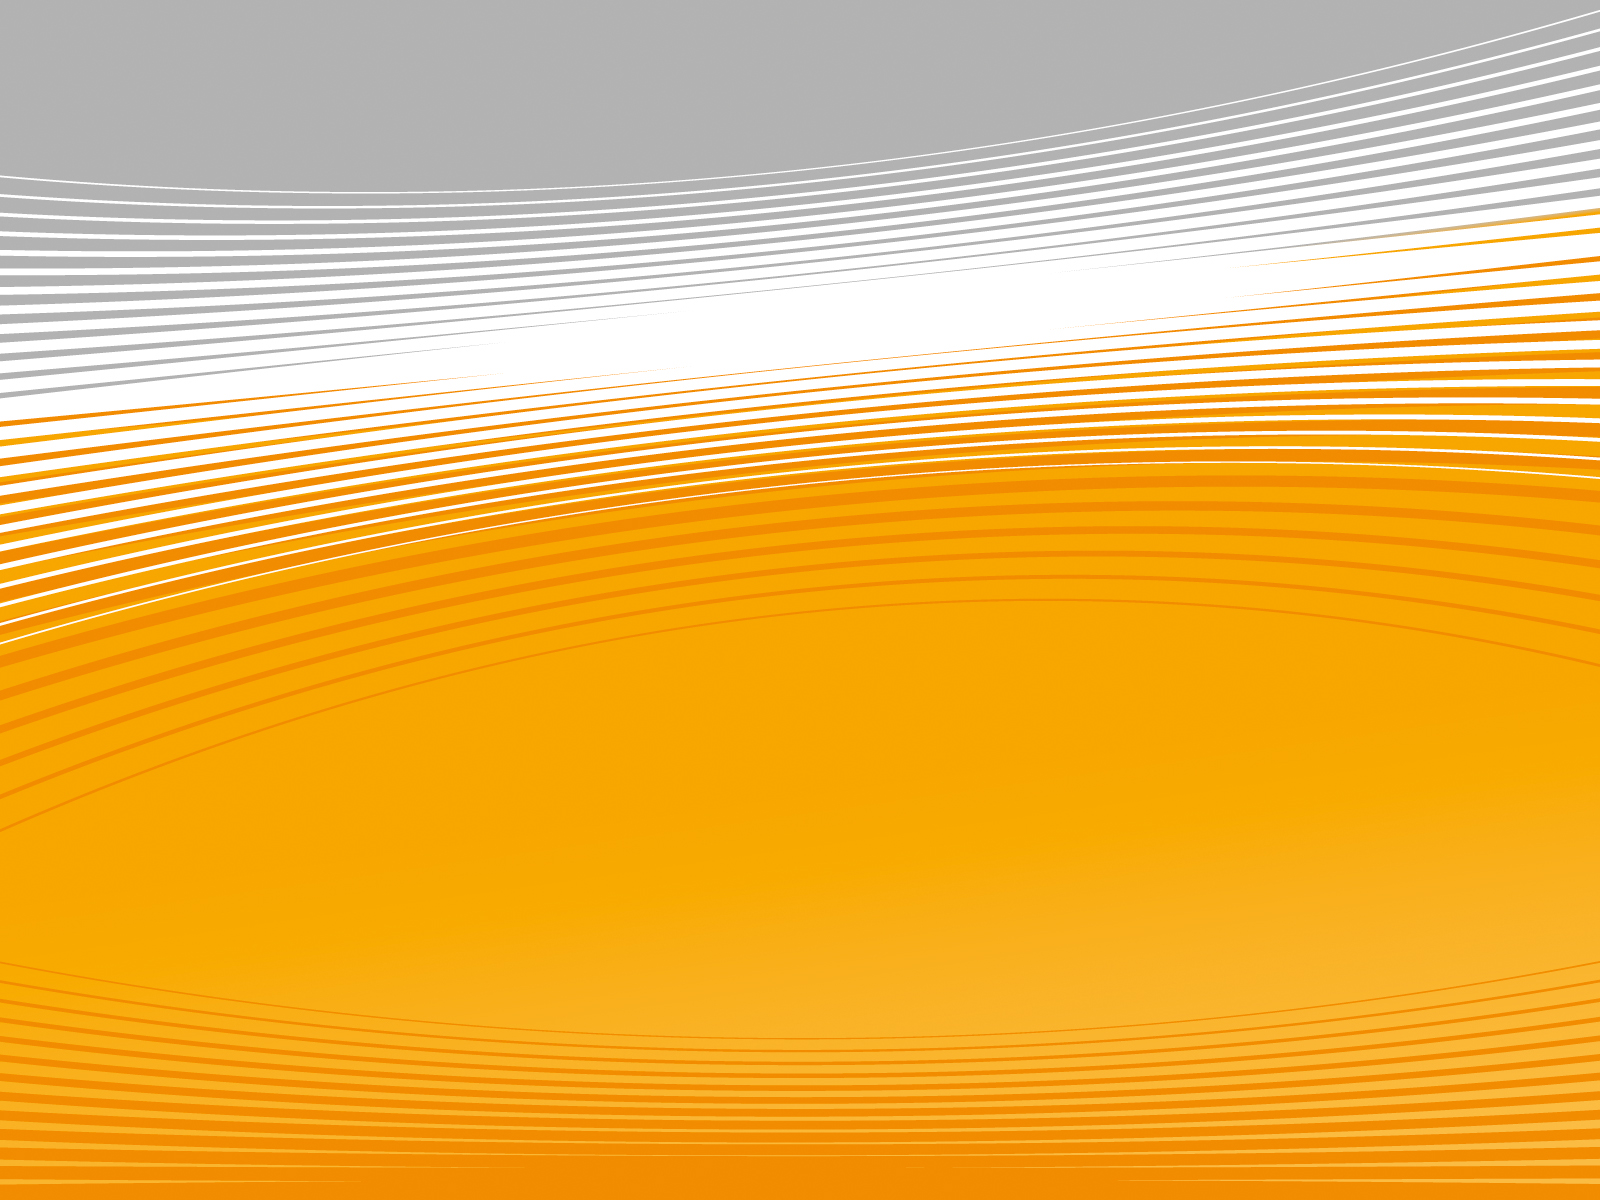 Yellow and white abstract